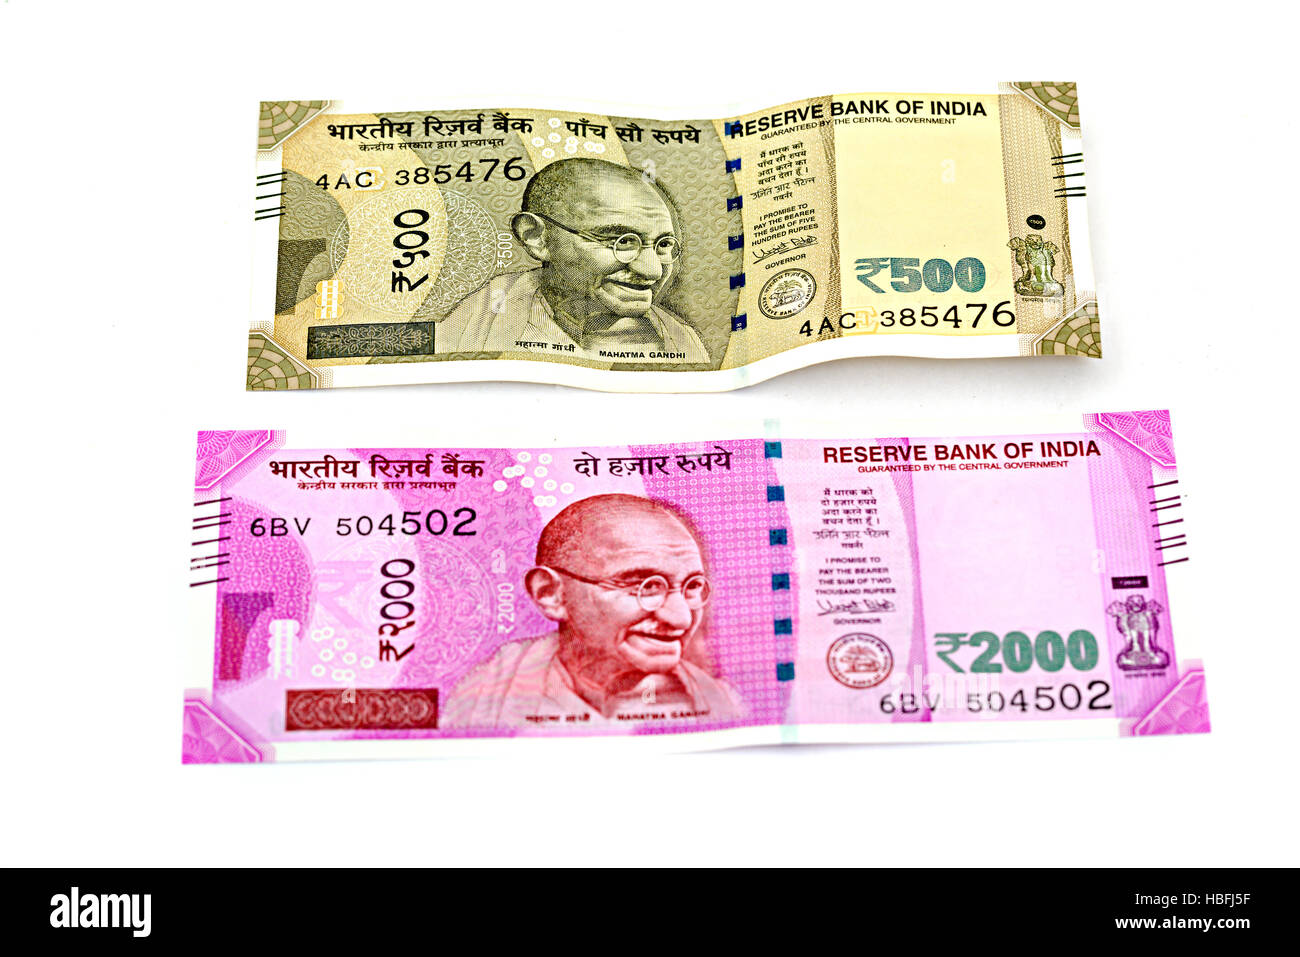 500 Rupee Note Stock Photos & 500 Rupee Note Stock Images